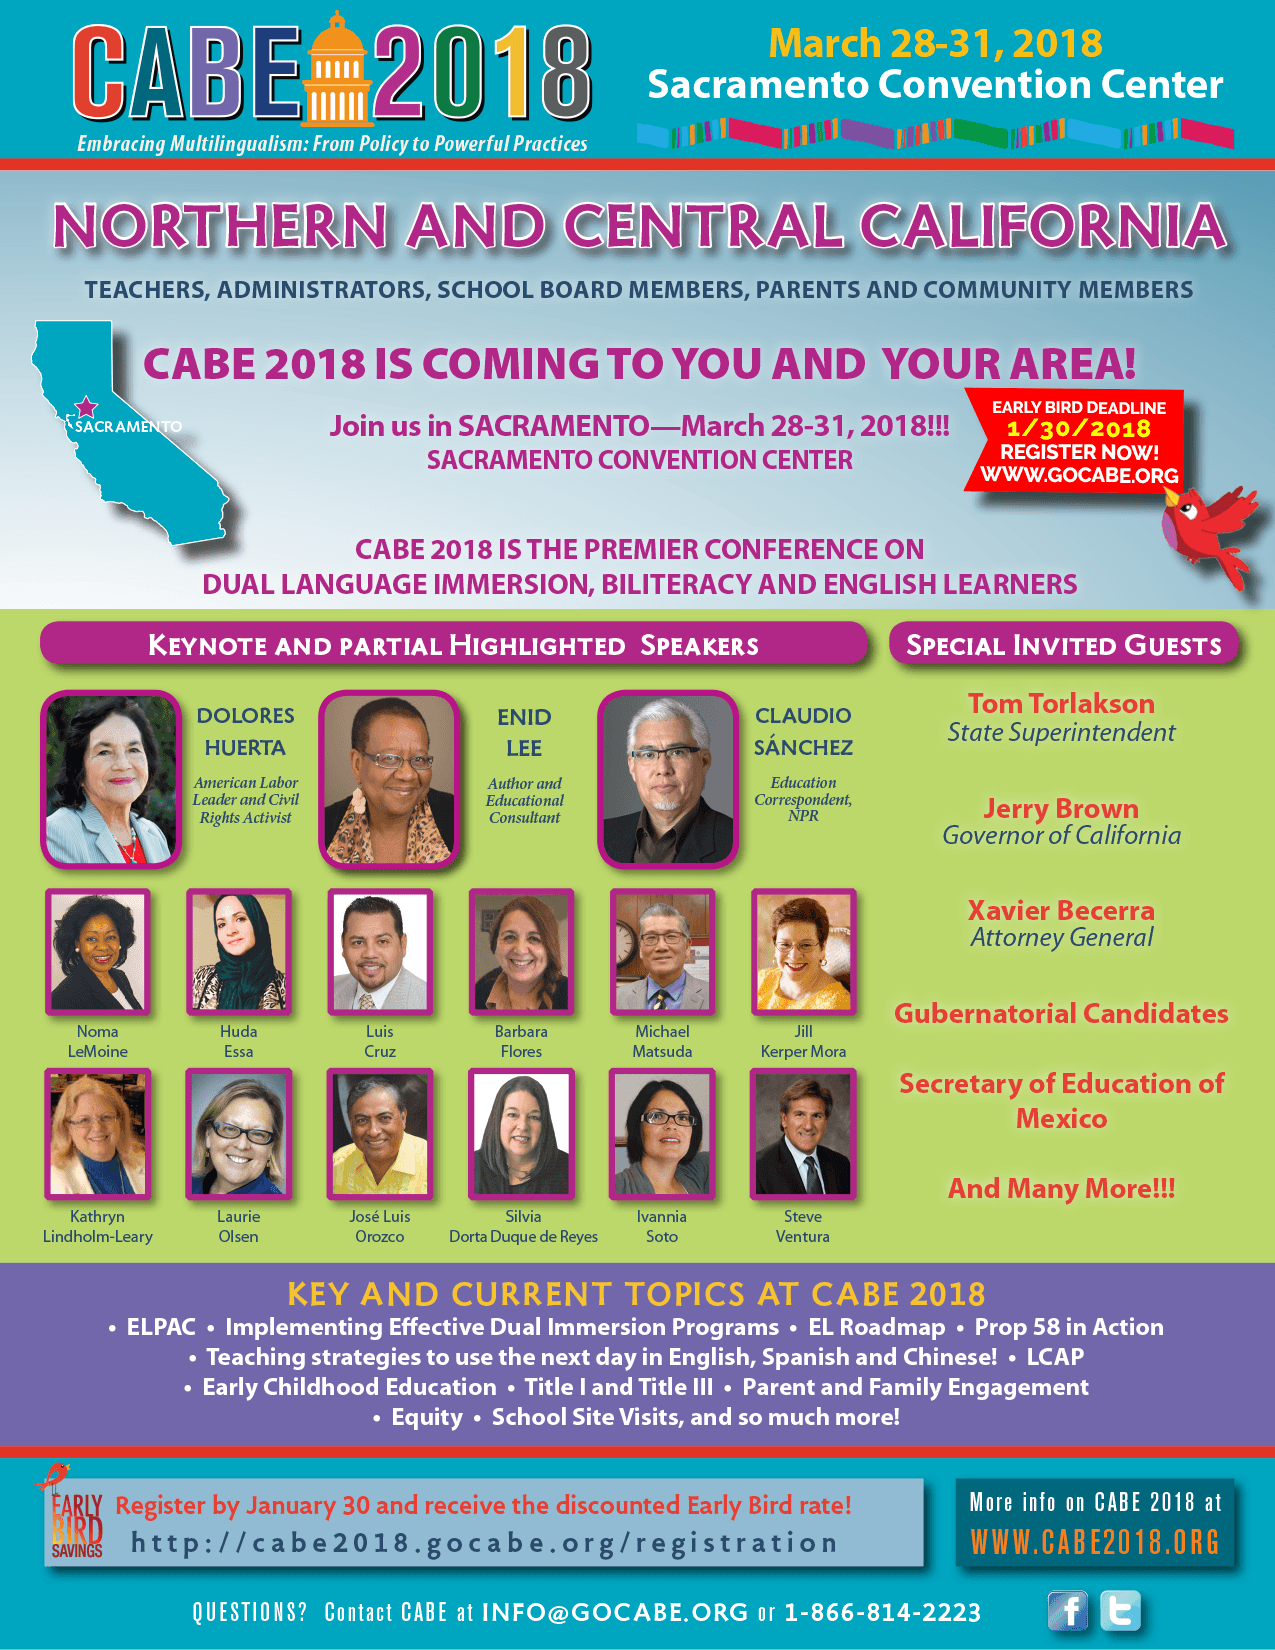 CABE 2018 Northern California Ad 6 Final 3